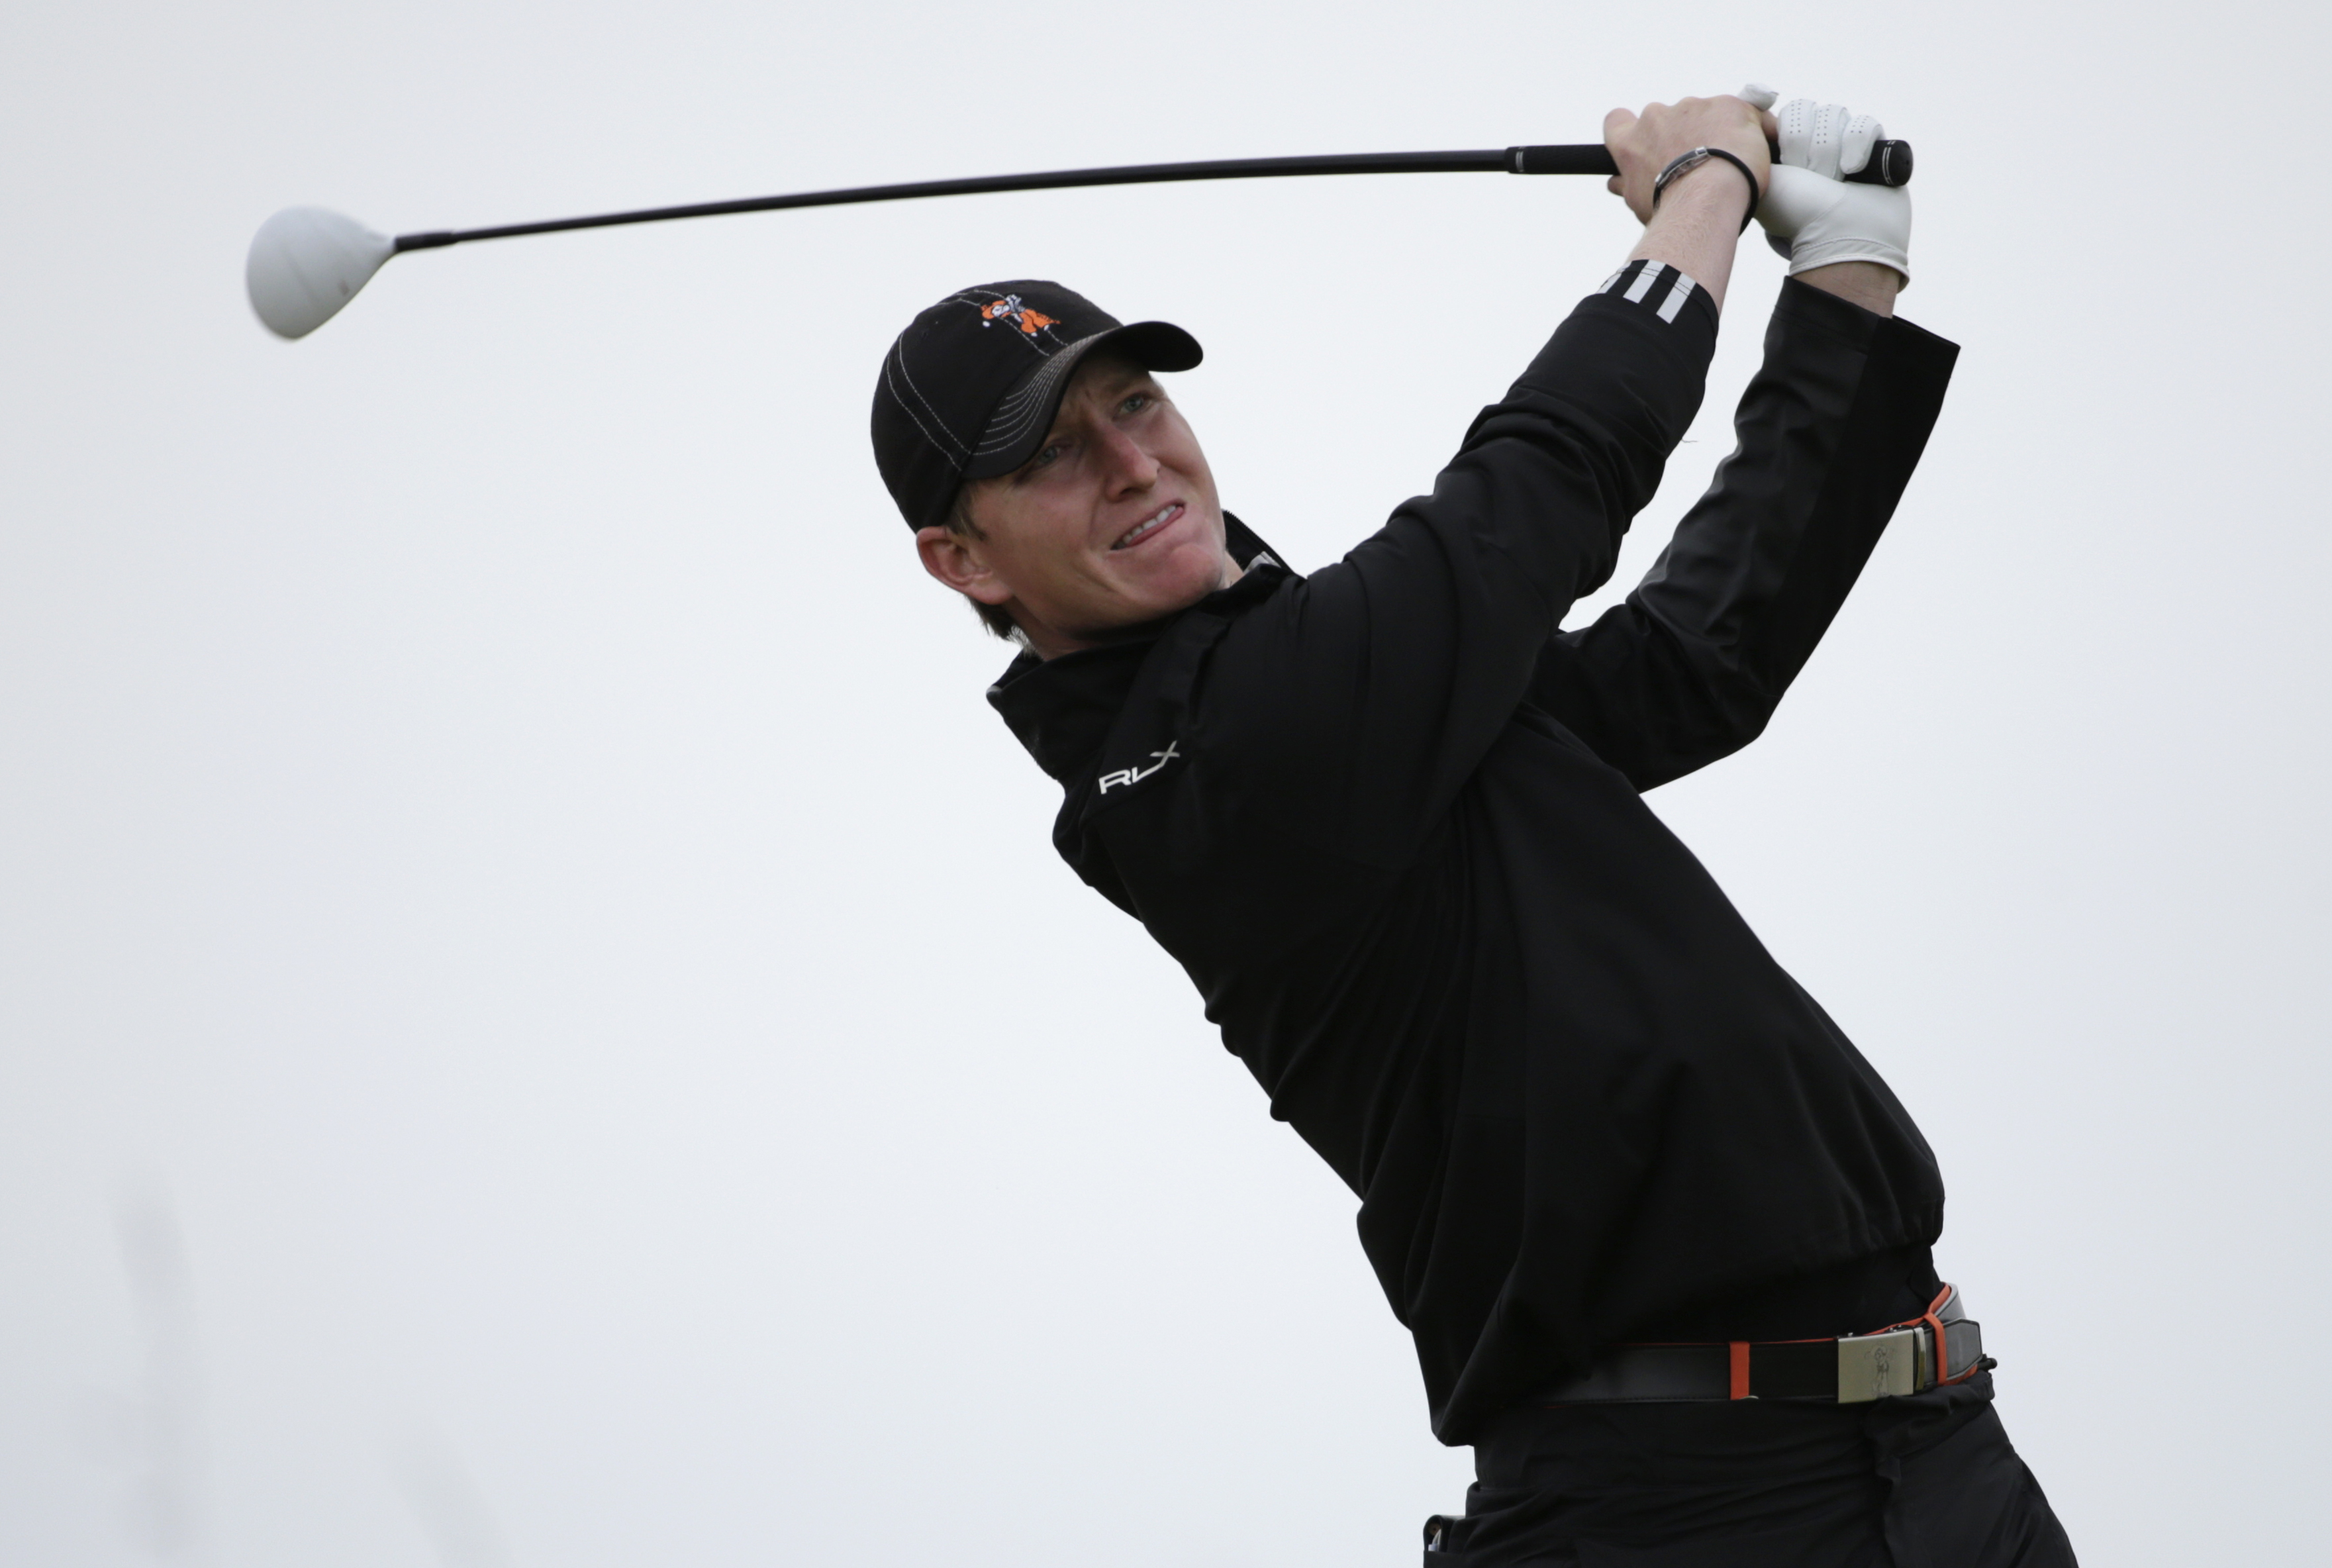 Jordan Niebrugge plays from the sixth tee during the final round at the 2015 British Open.